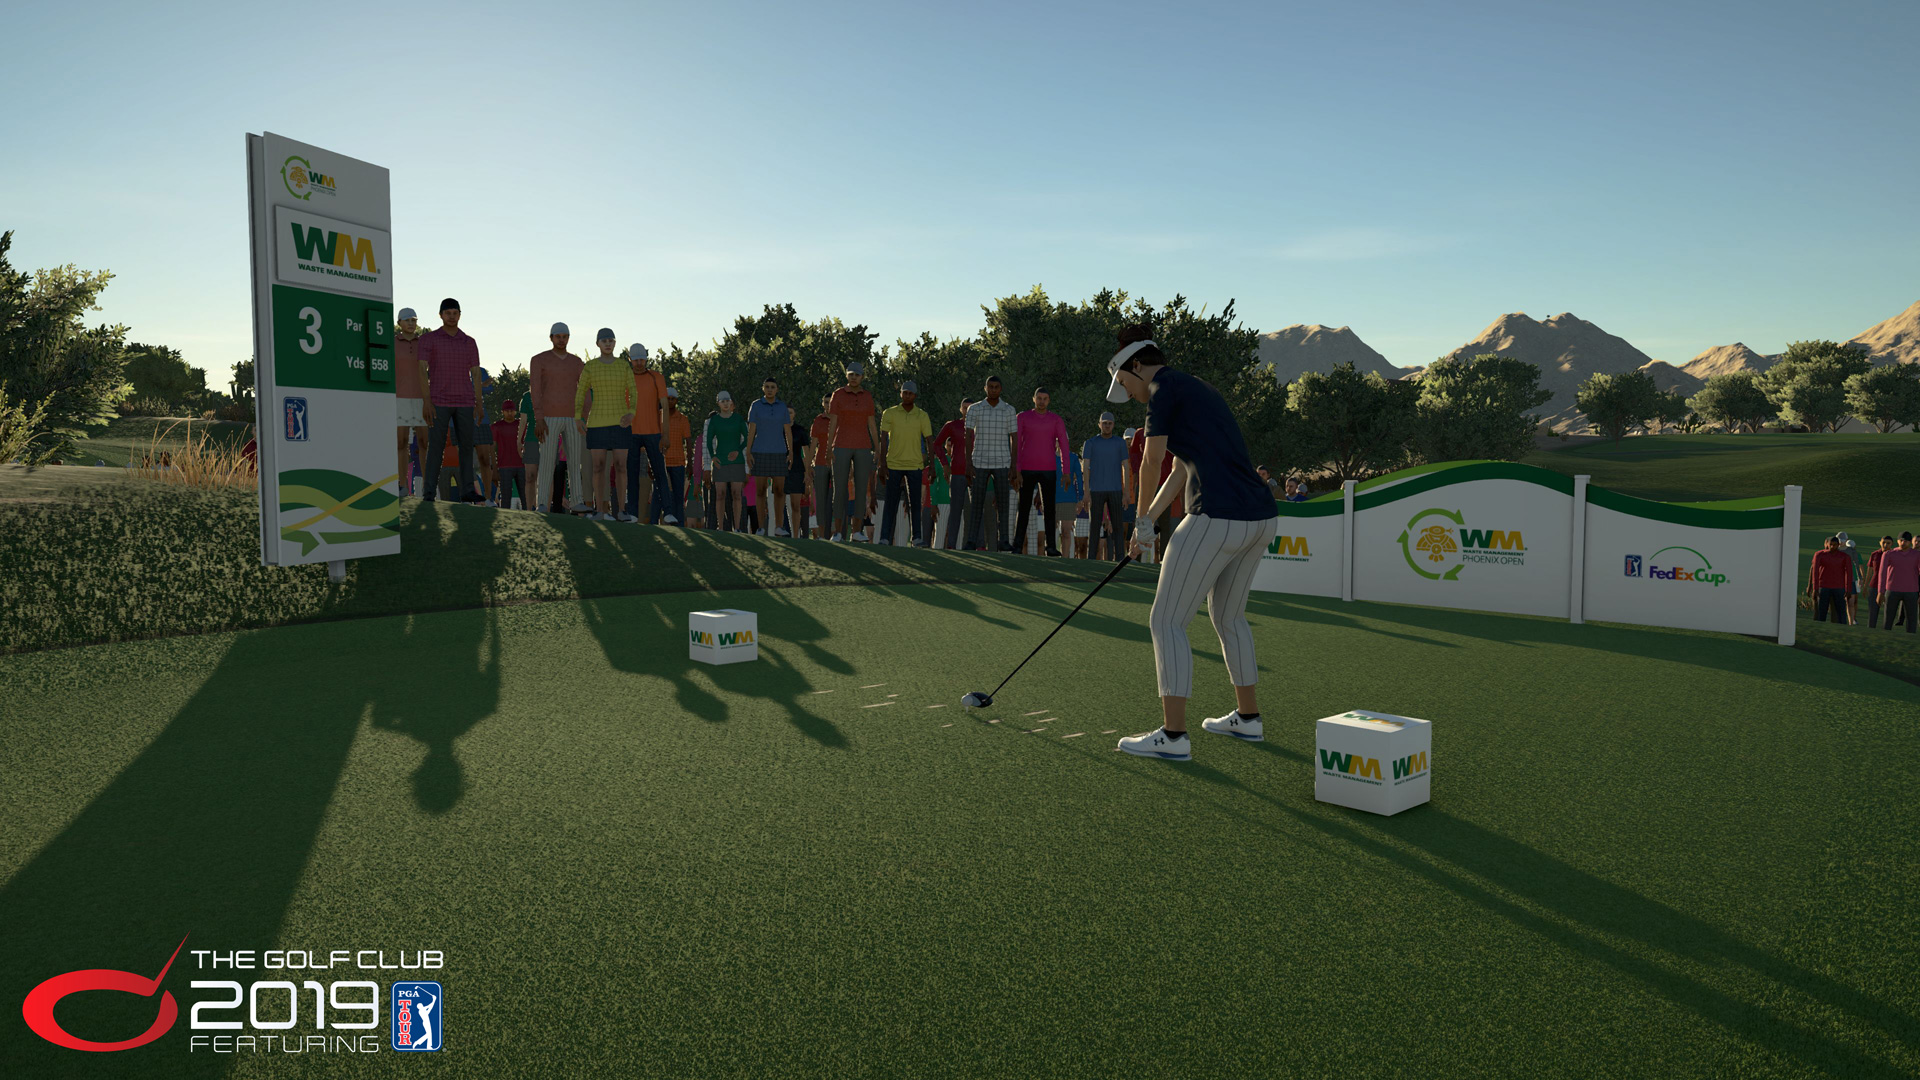 2K publica The Golf Club 2019: Featuring PGA Tour